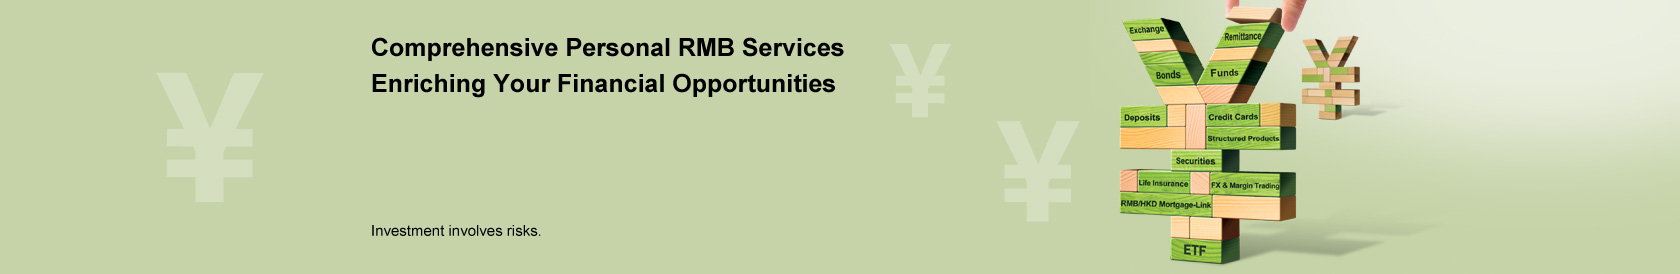 Comprehensive Personal RMB Services Enriching Your Financial Opportunities  Investment involves risks.